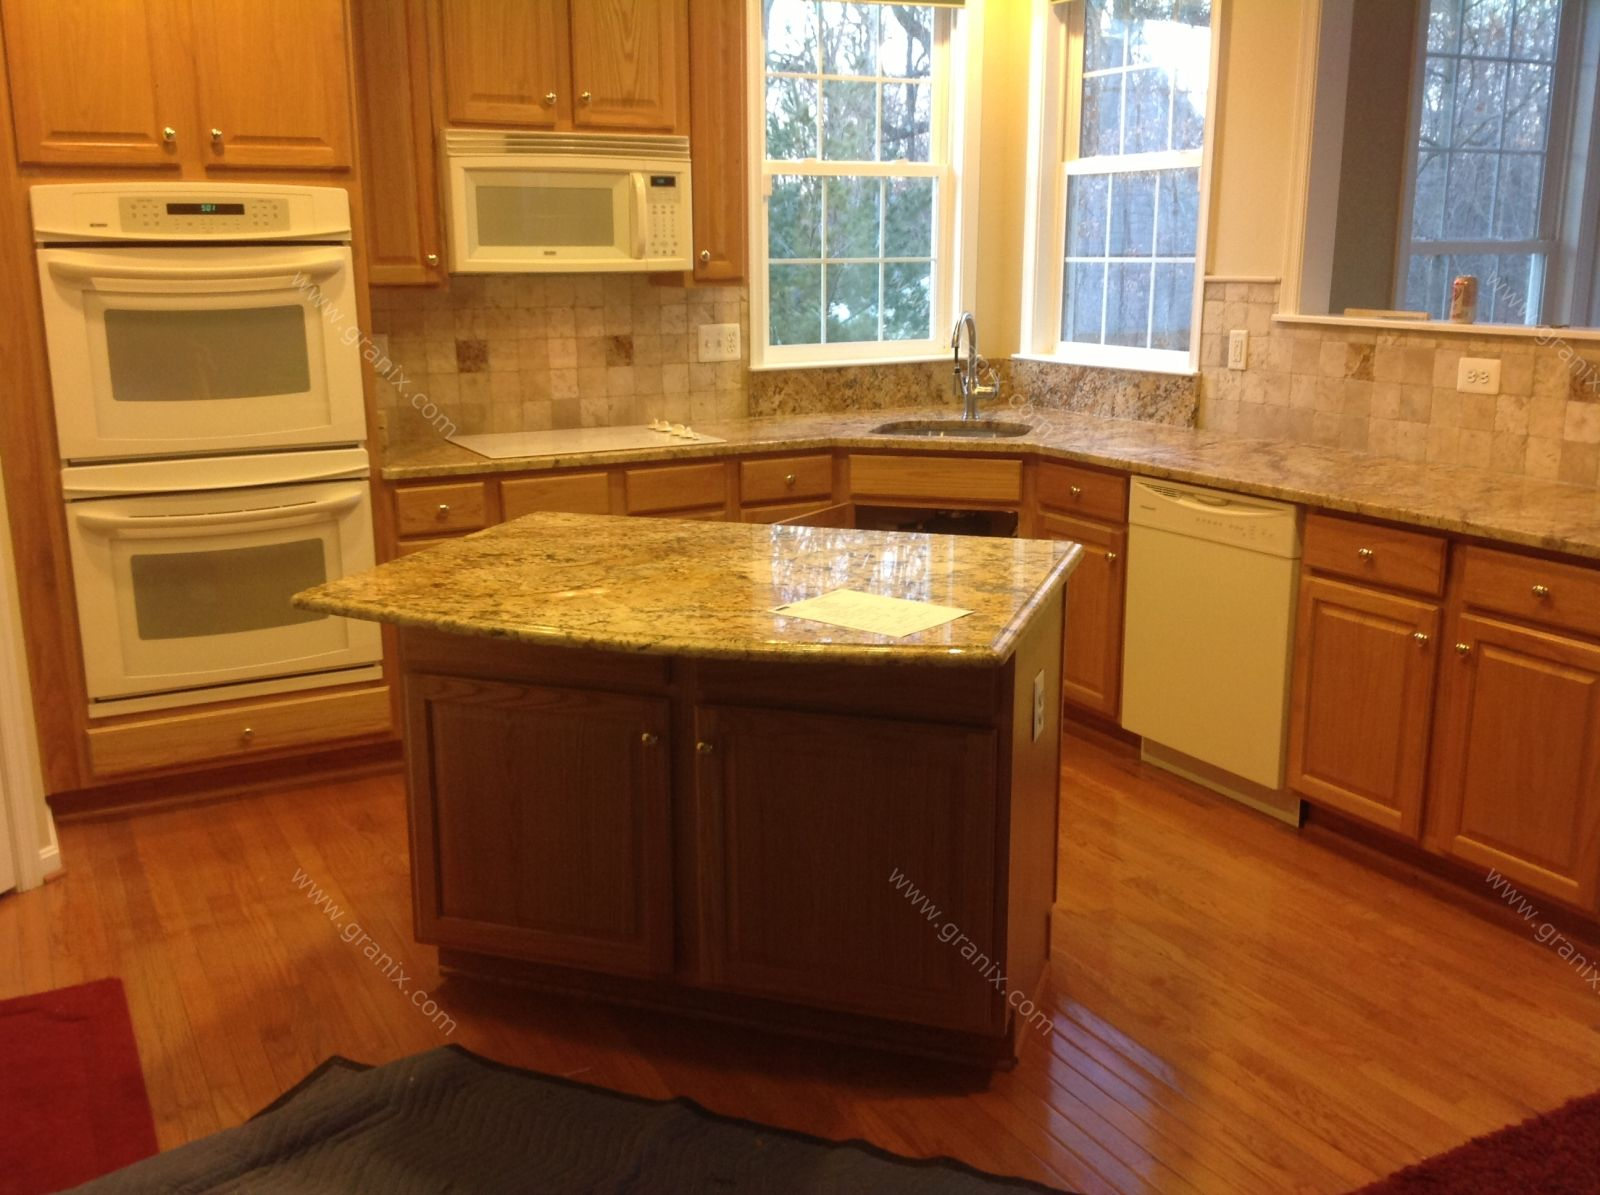 Solarius granite pictures google search samples for Backsplash ideas quartz countertops